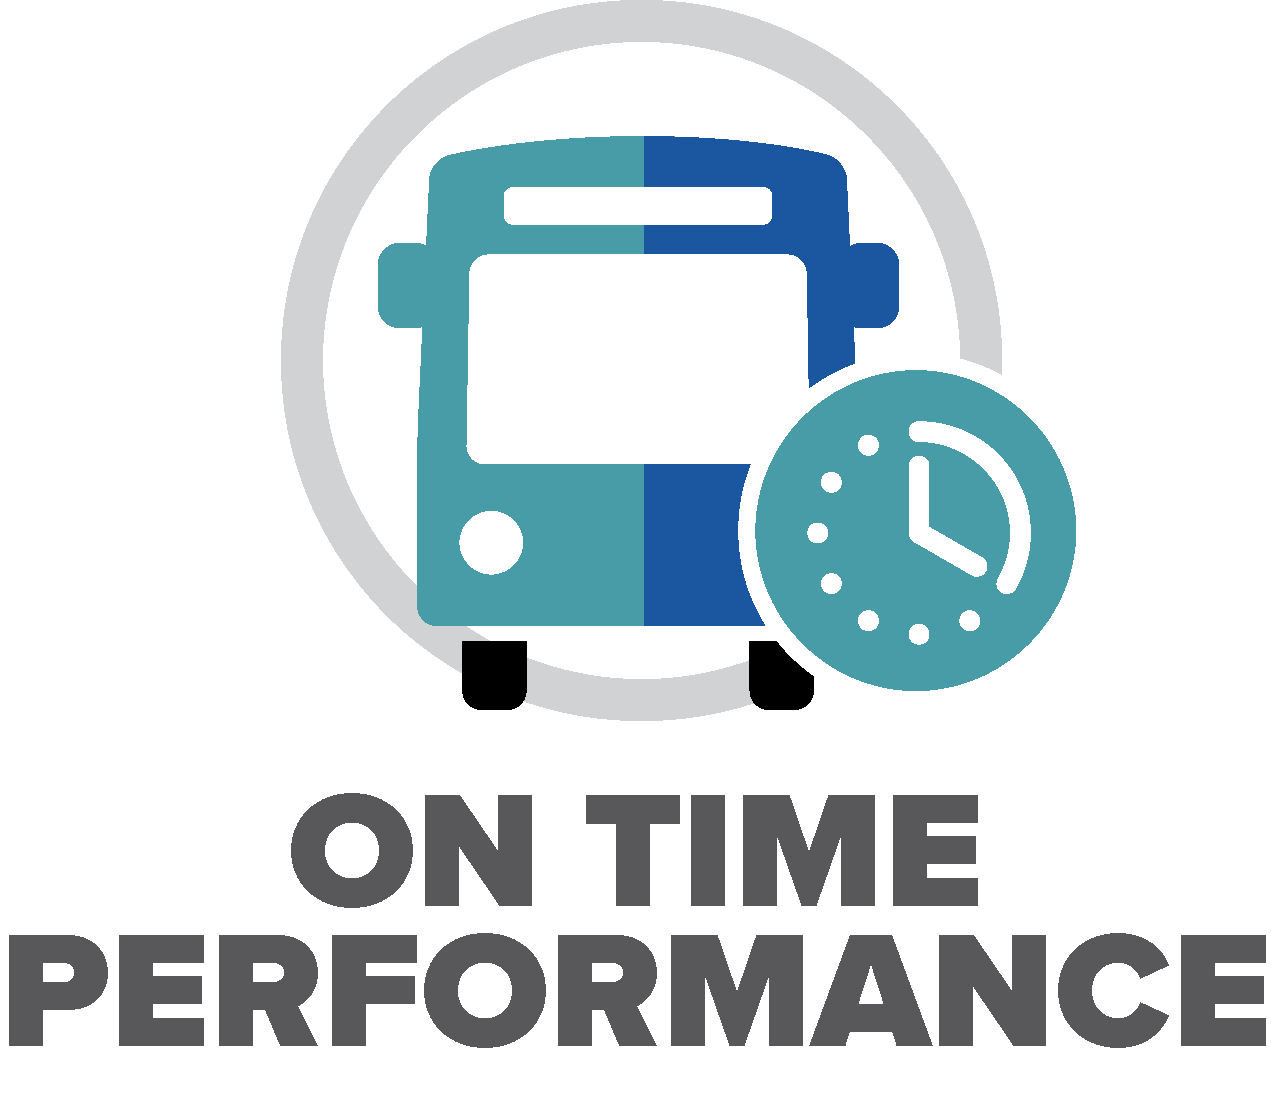 on time performance